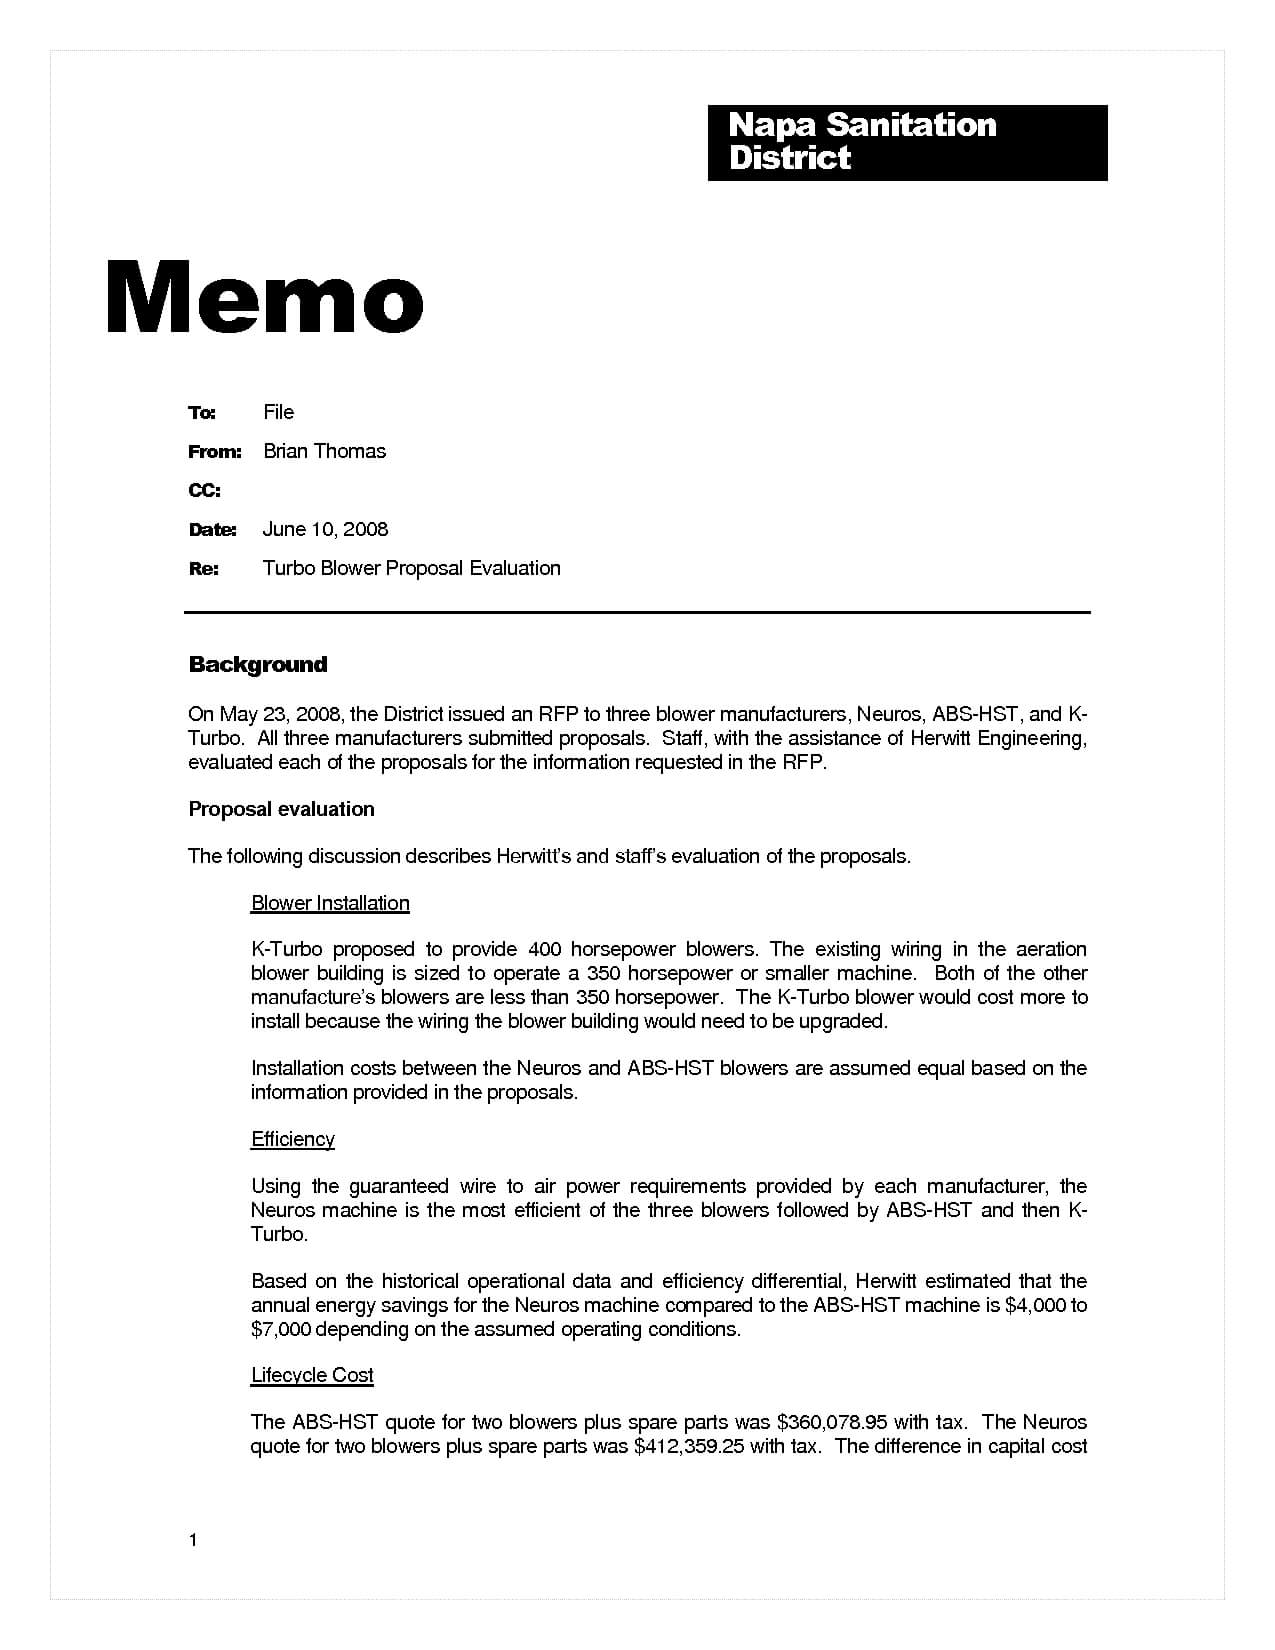 016 Memo Templates For Word Professional Business Template Inside Memo Template Word 2013